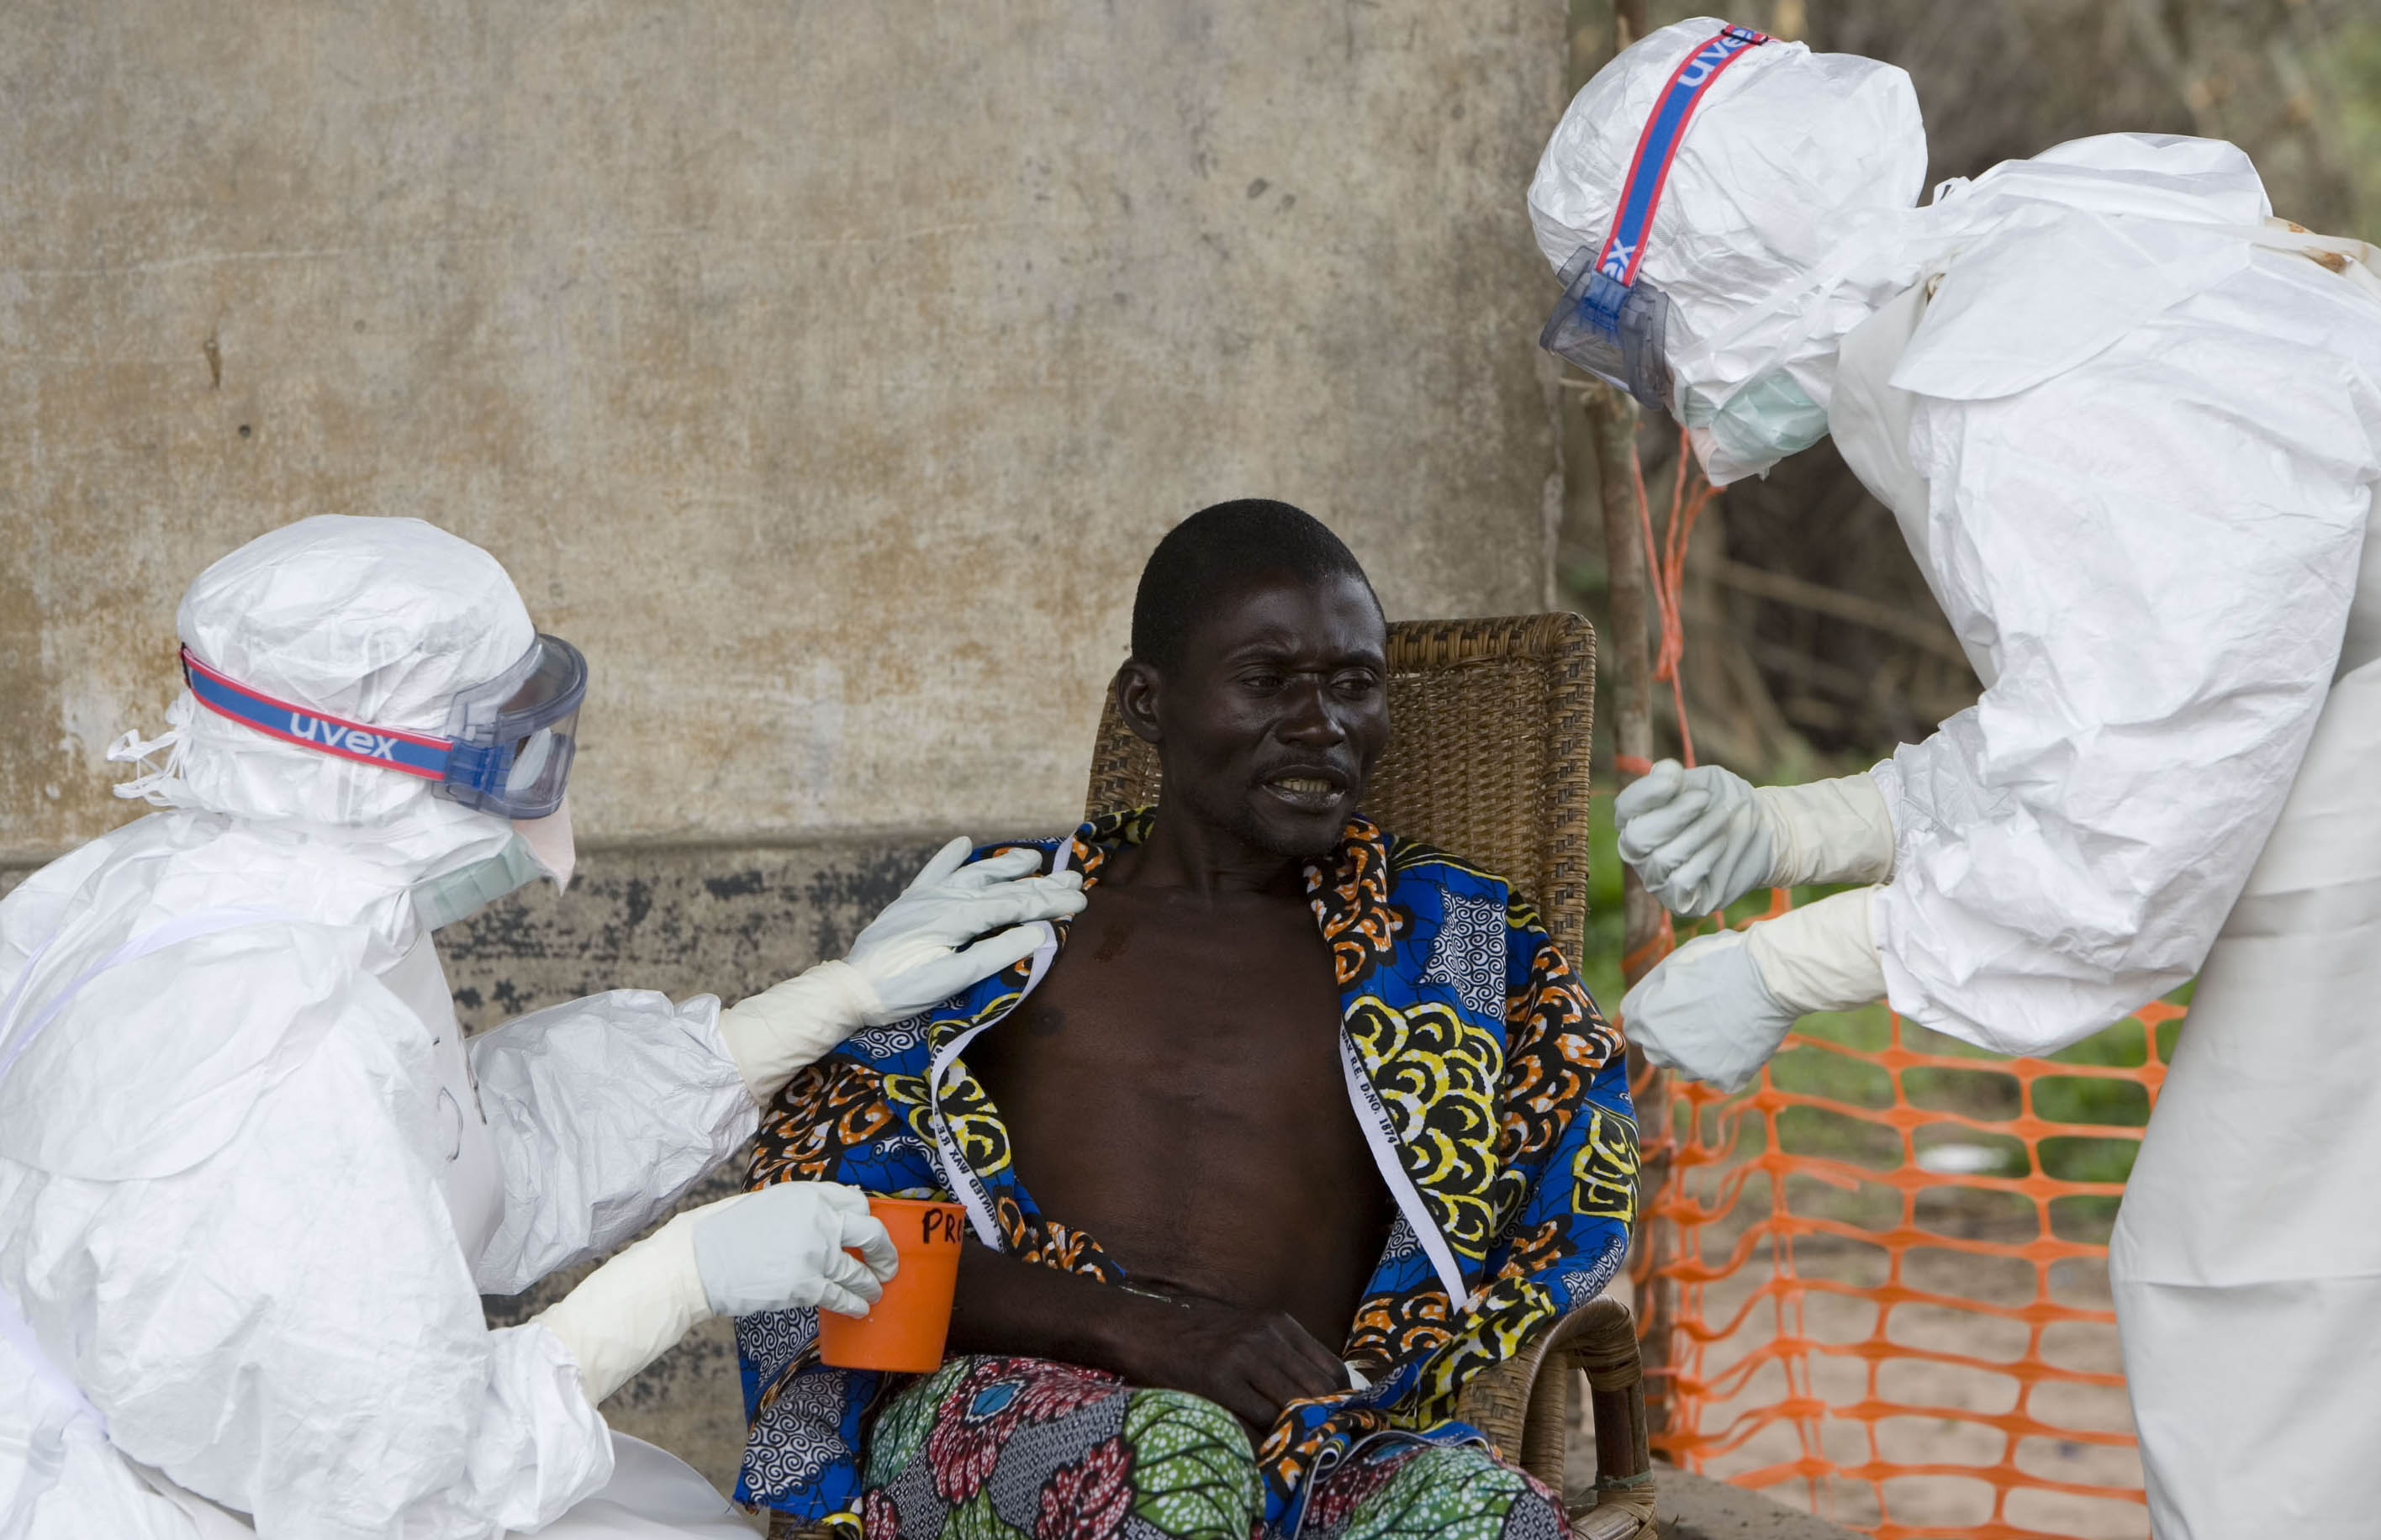 Ebola health workers tend to congolese patient with Ebola fever